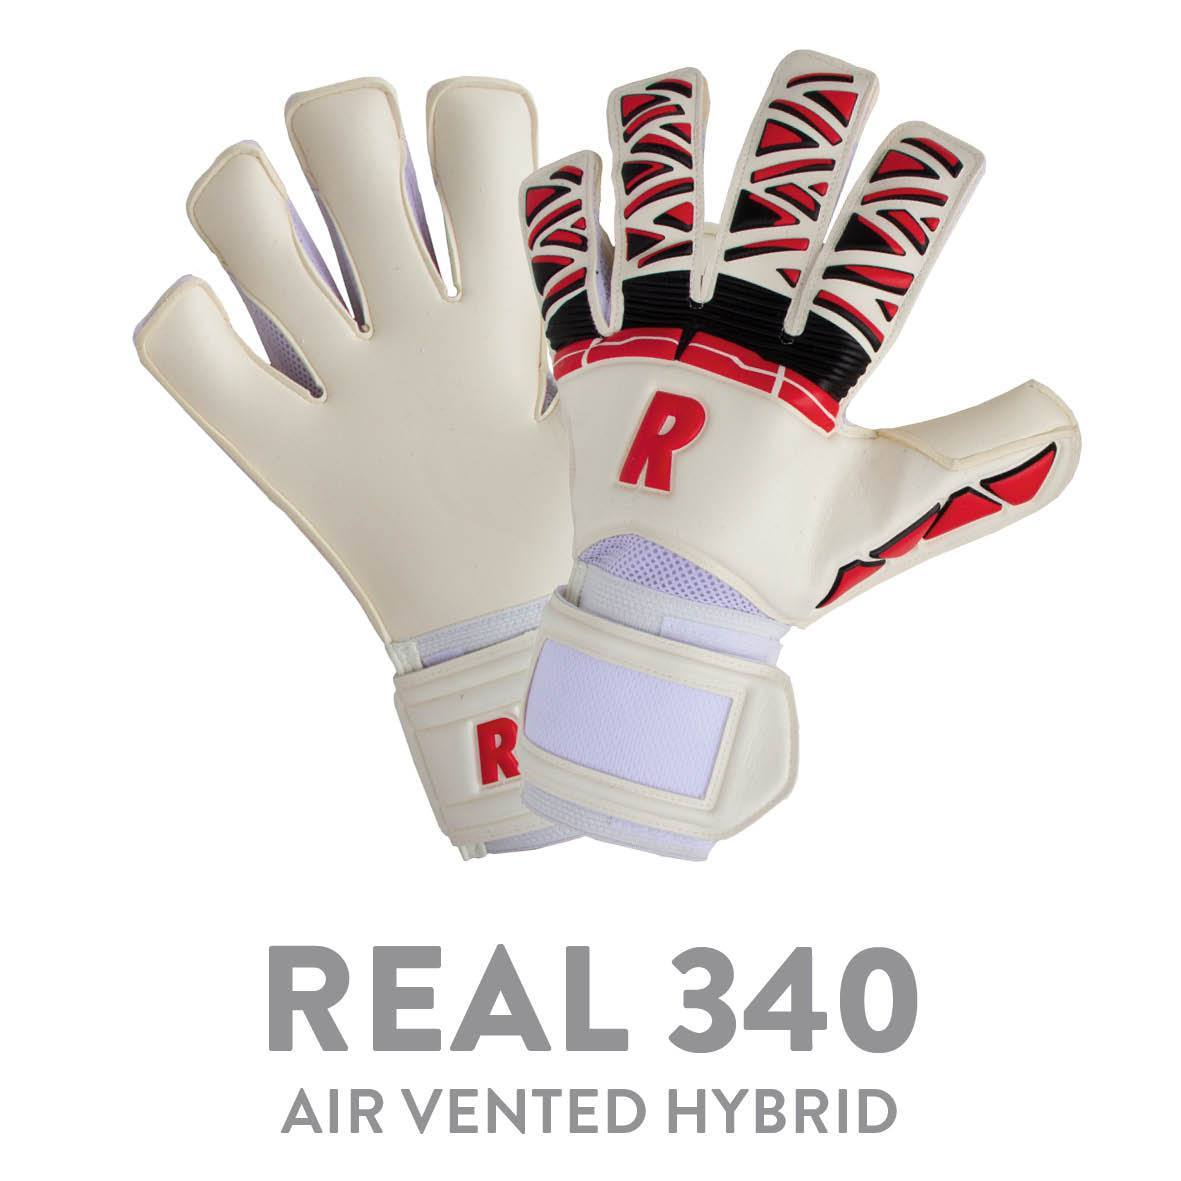 REAL 340 AIR VENTED HYBRID WHITE/RED/BLACK